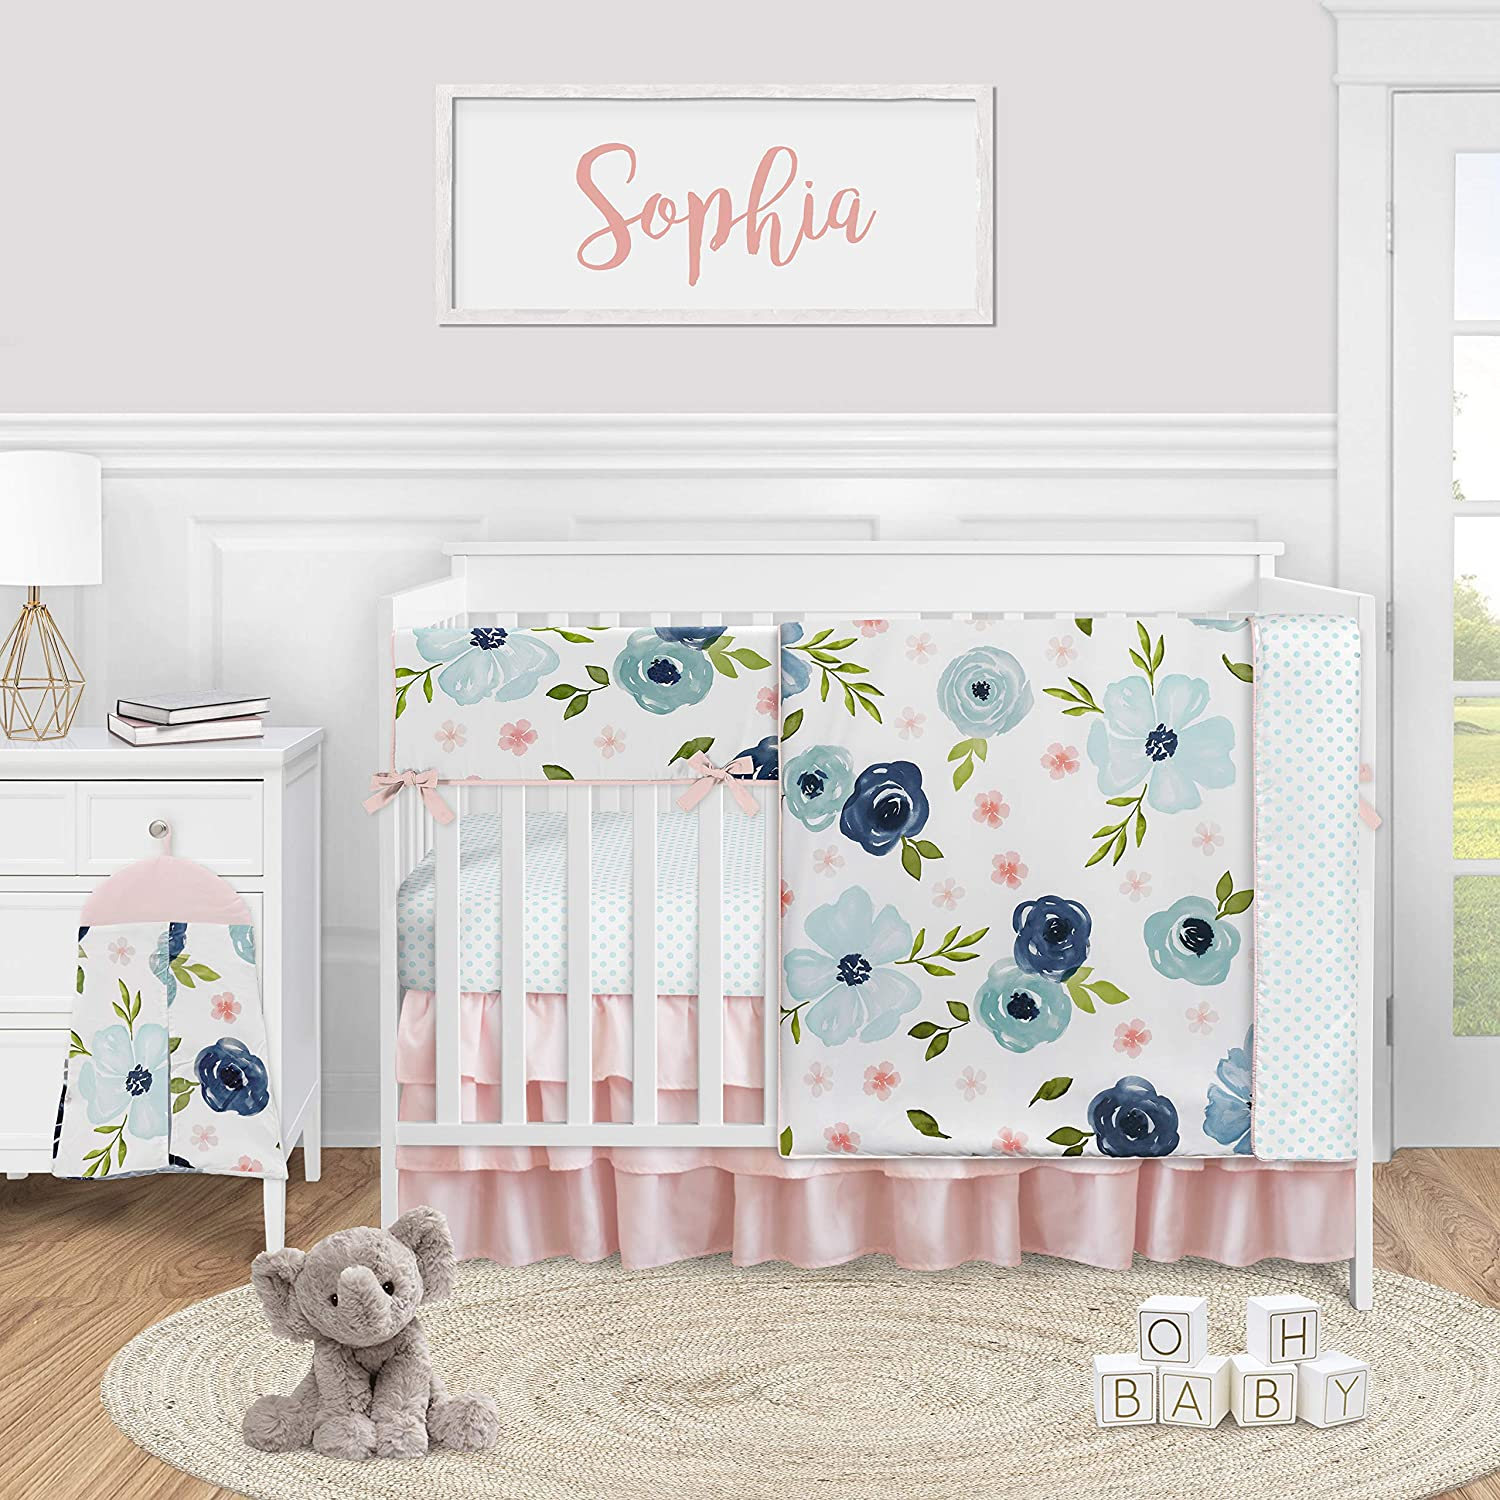 Sweet Jojo Designs Blue Watercolor Floral Baby Girl Nursery Crib Bedding Set - 5 Pieces - Blush Pink Navy Green and White Shabby Chic Rose Flower Polka Dot